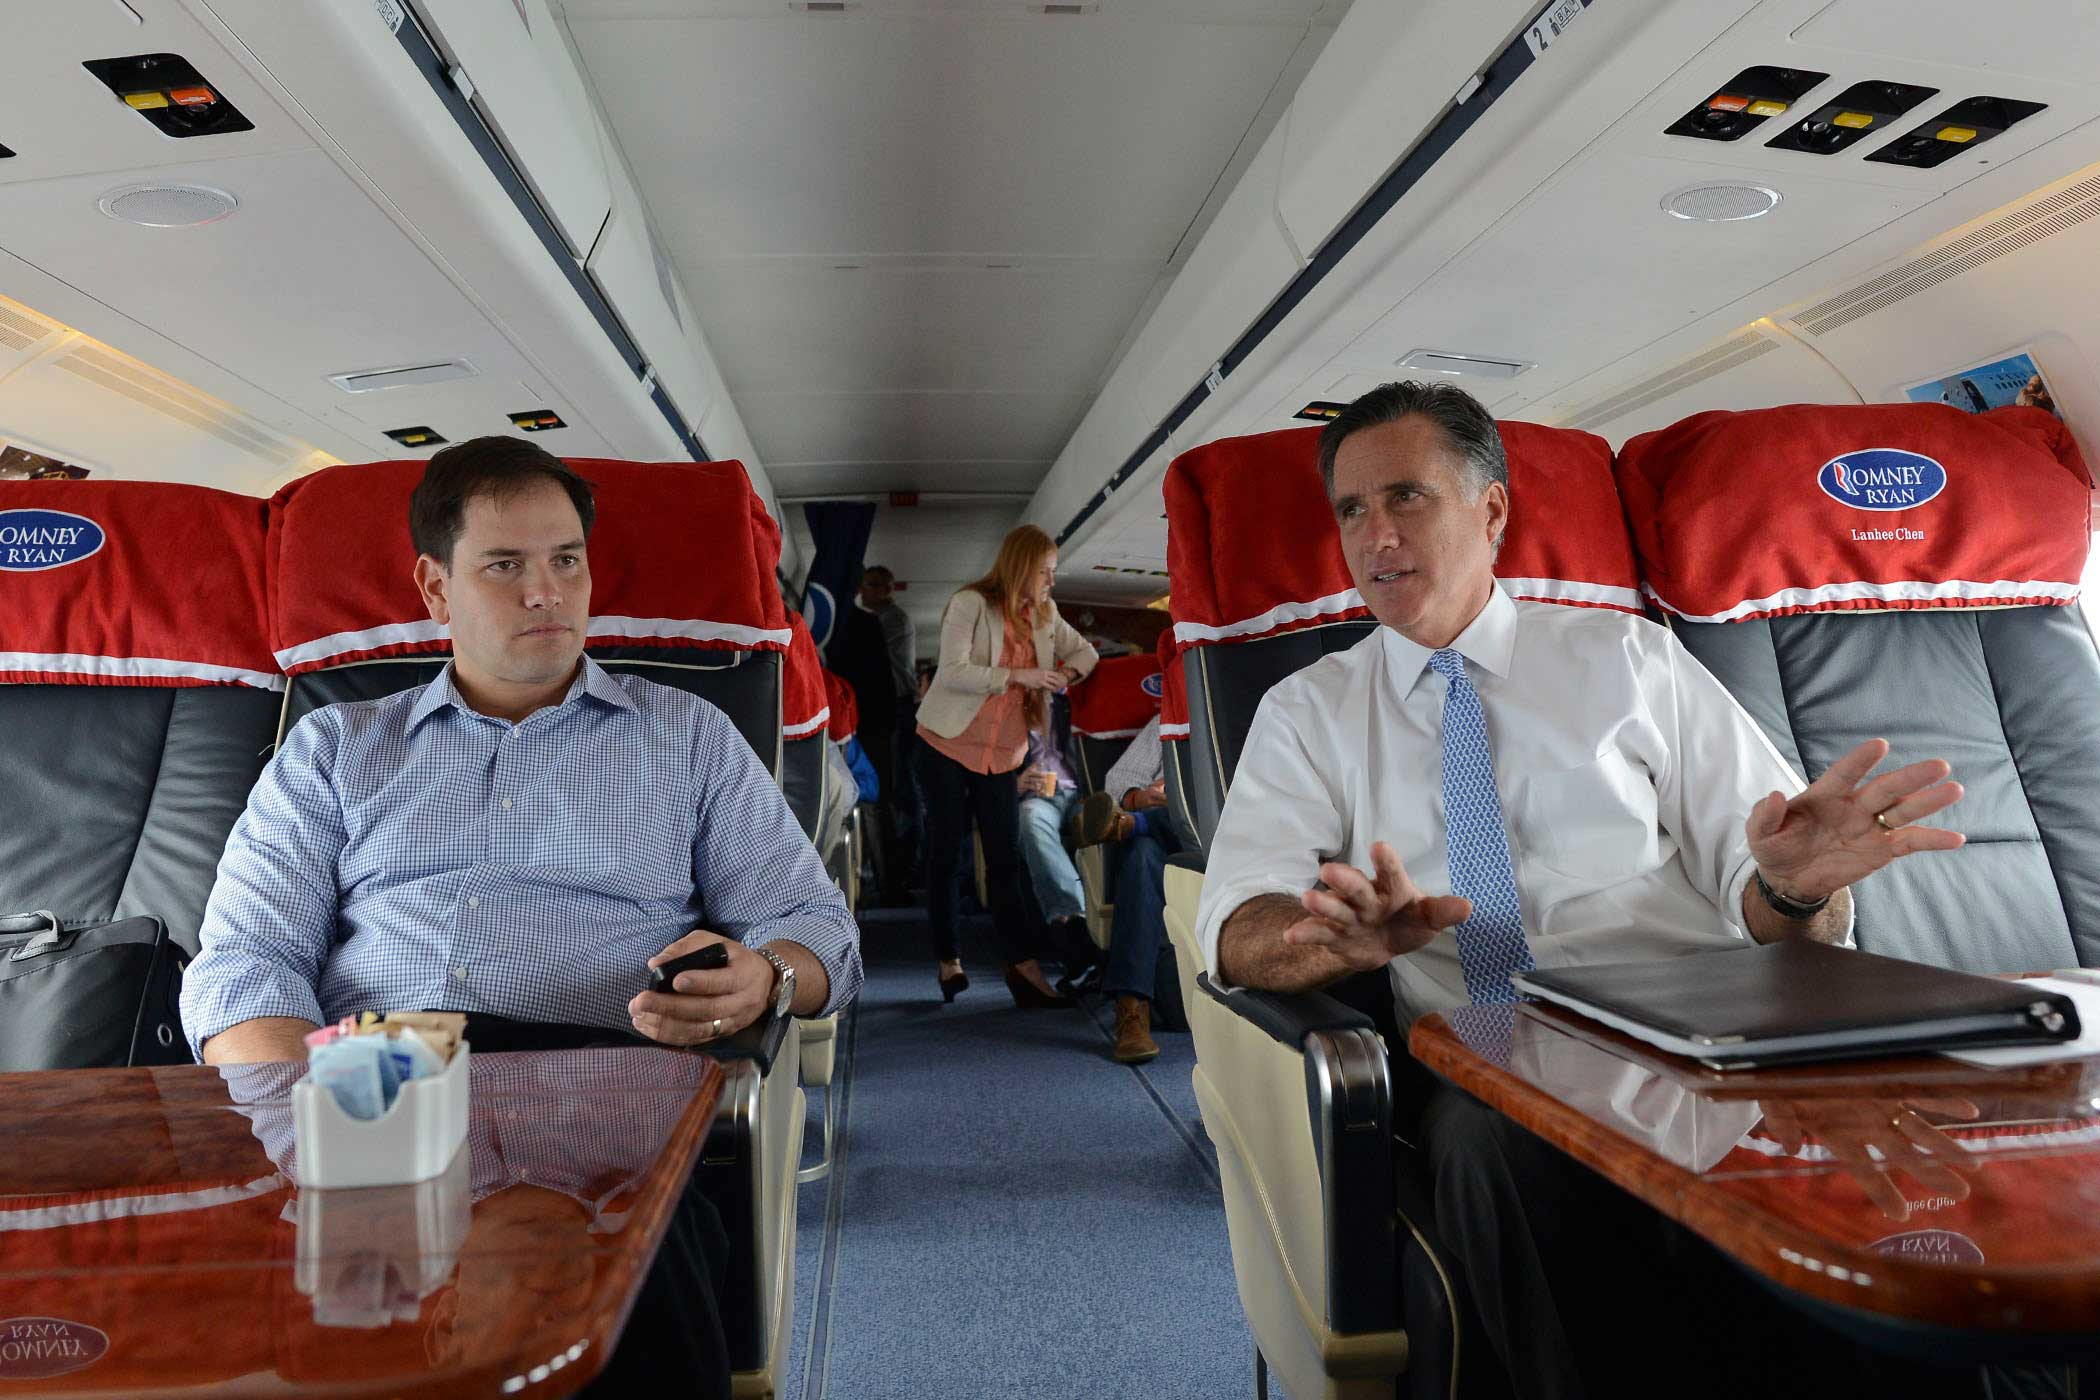 Former Republican Presidential candidate Mitt Romney speaks with Senator Marco Rubio while flying from Pensacola to Orlando, Fla., on Oct. 27, 2012.